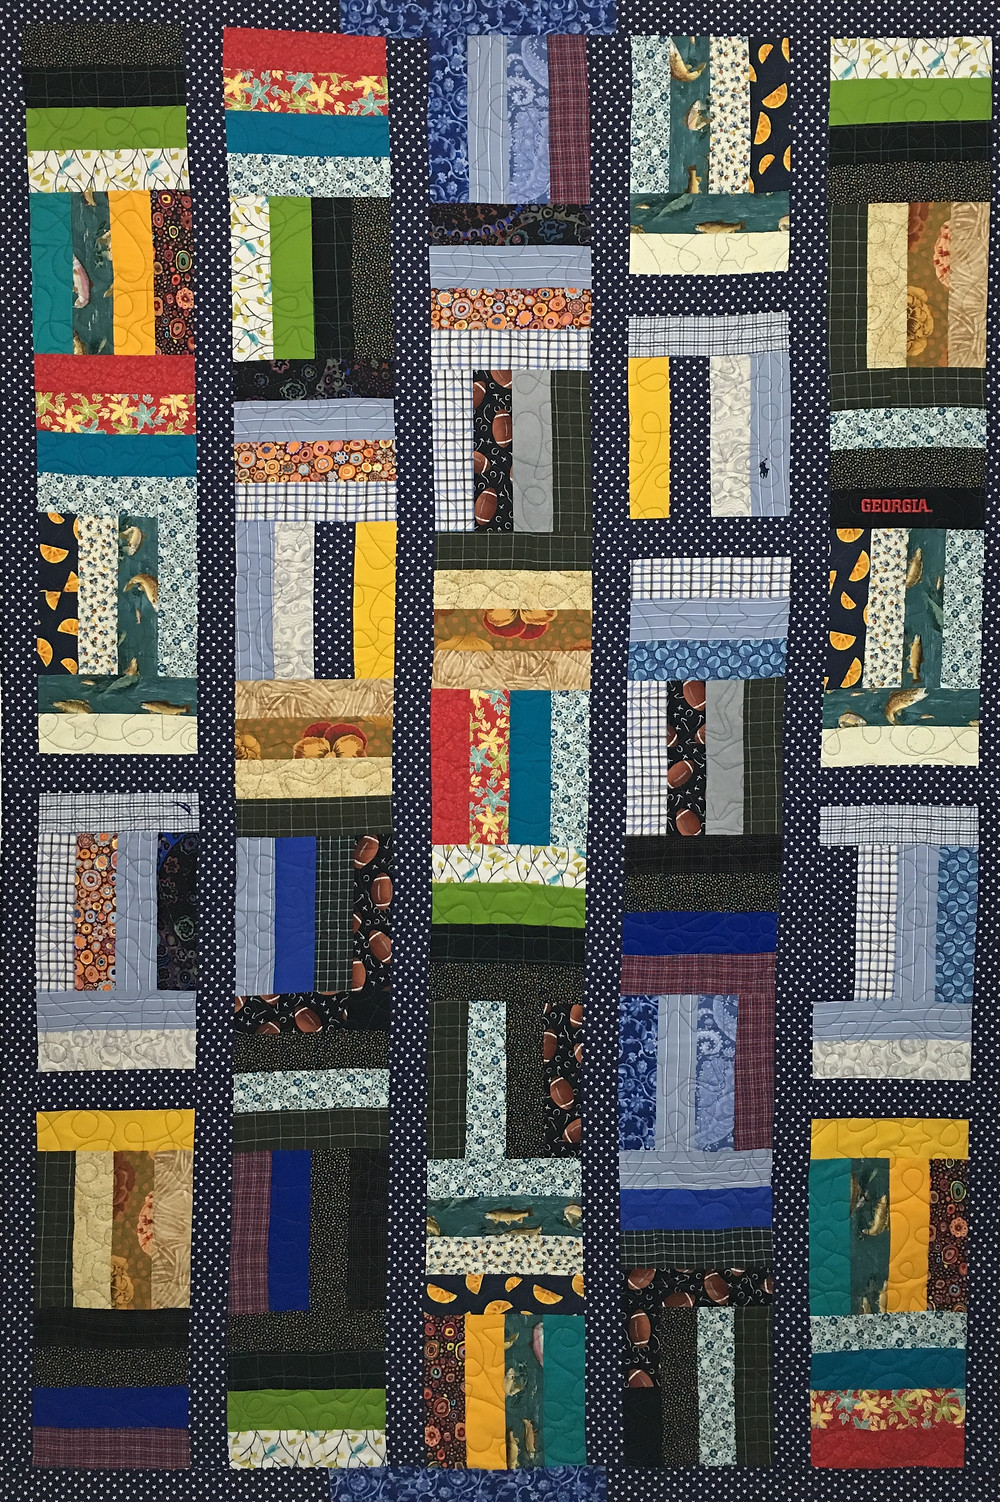 Jelly Bean Dreaming Memories quilt by Judi Castro